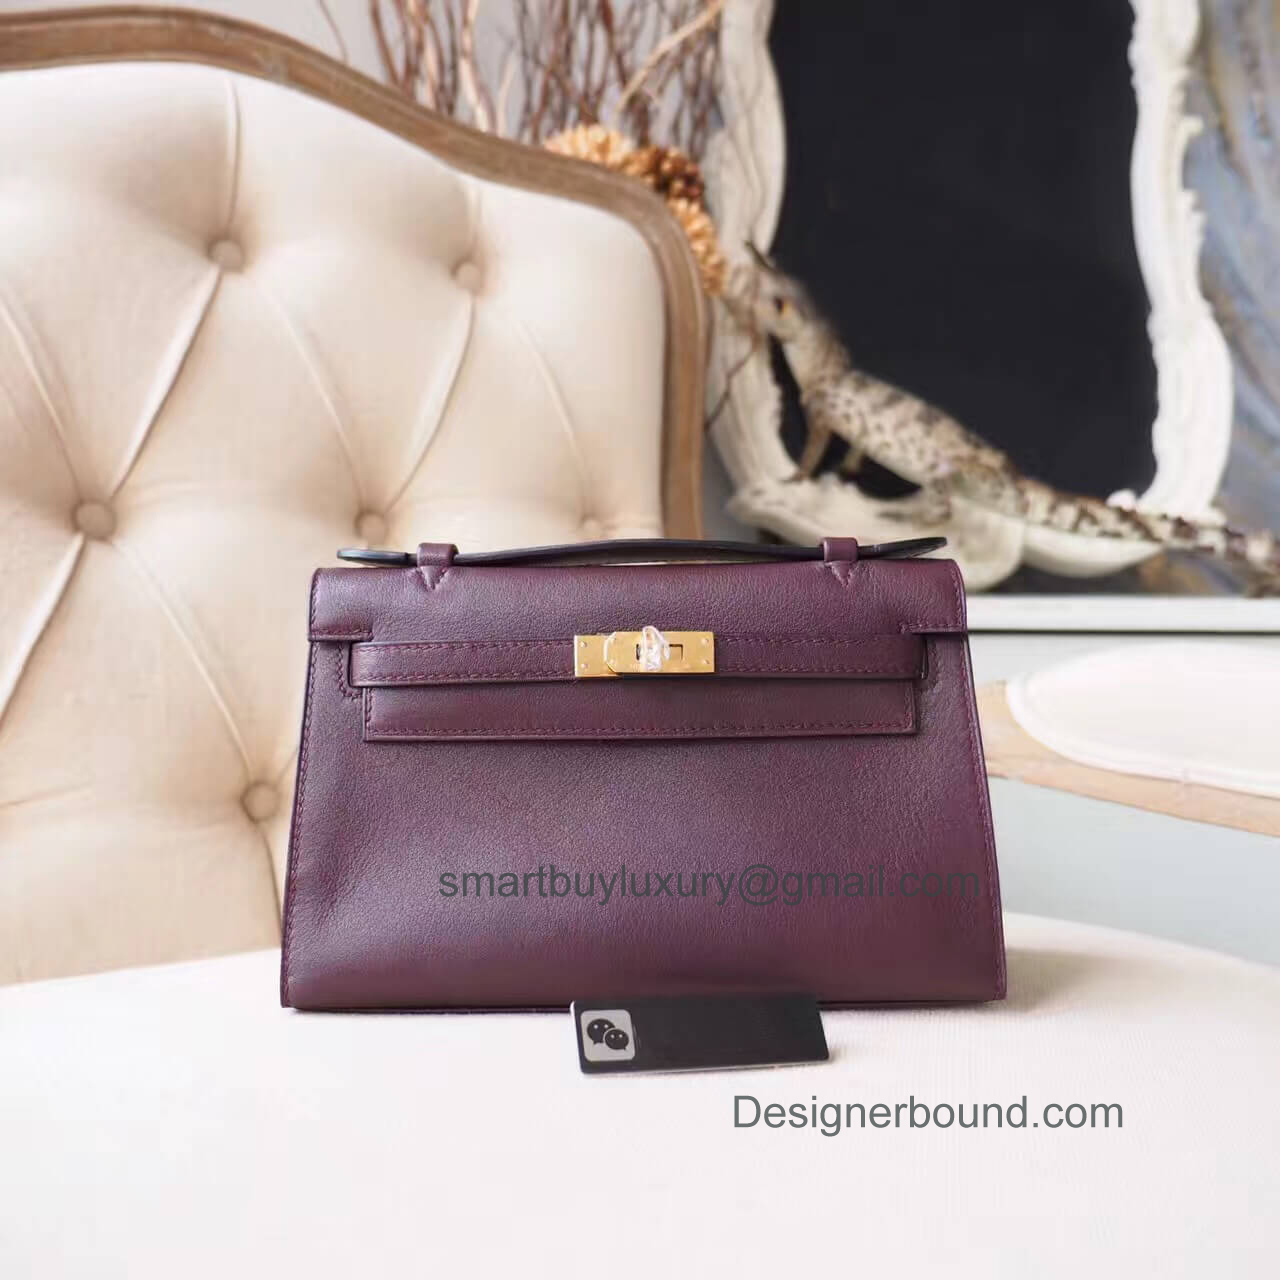 Hermes Mini Kelly 22 Pochette Bag in ck58 Prune Swift GHW